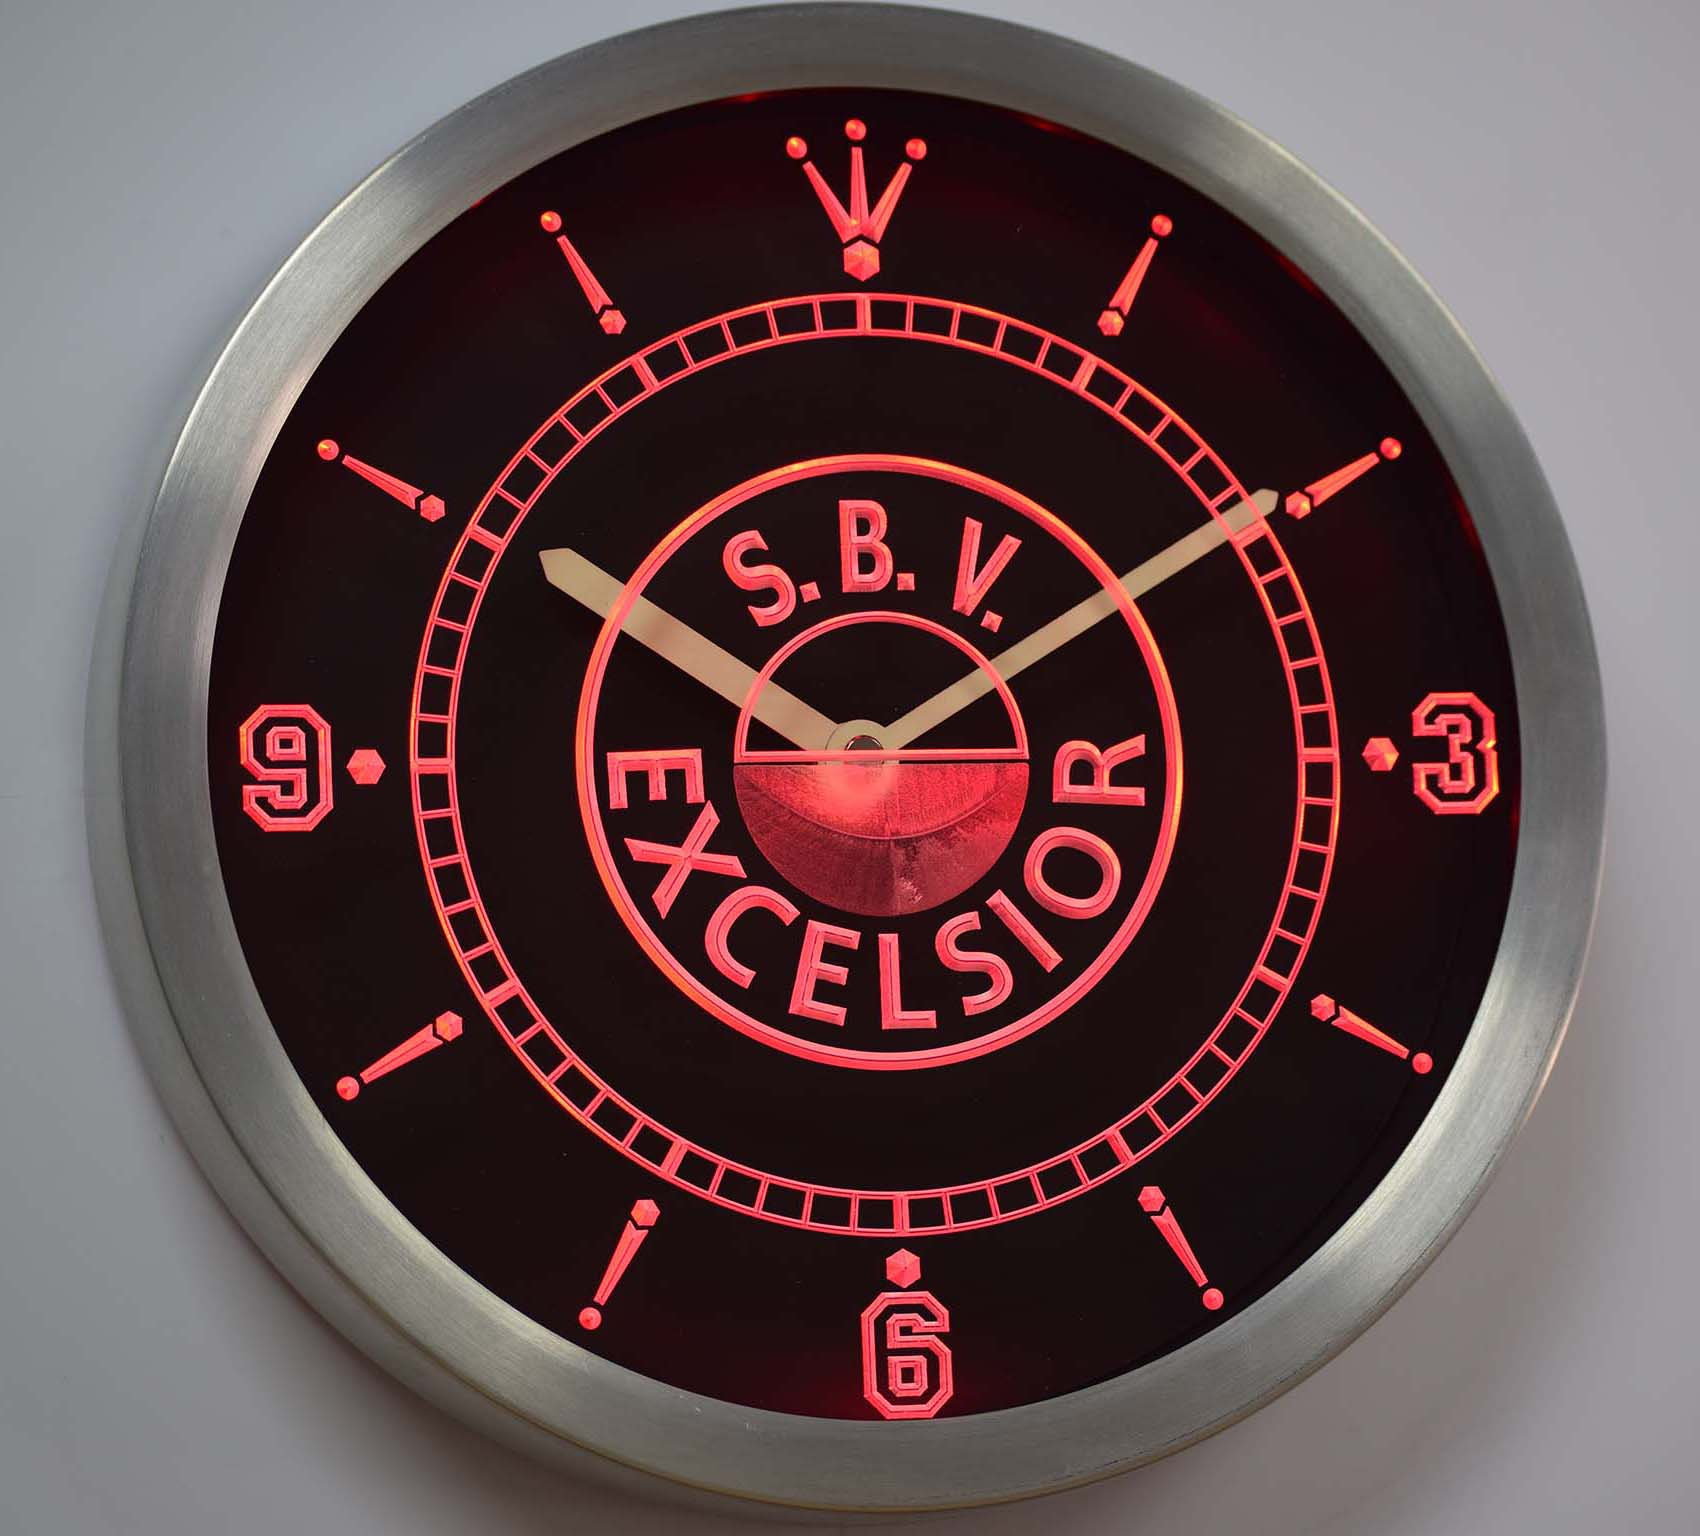 nc1022 S.B.V. Excelsior Dutch Eredivisie Football Neon Sign LED Wall Clock